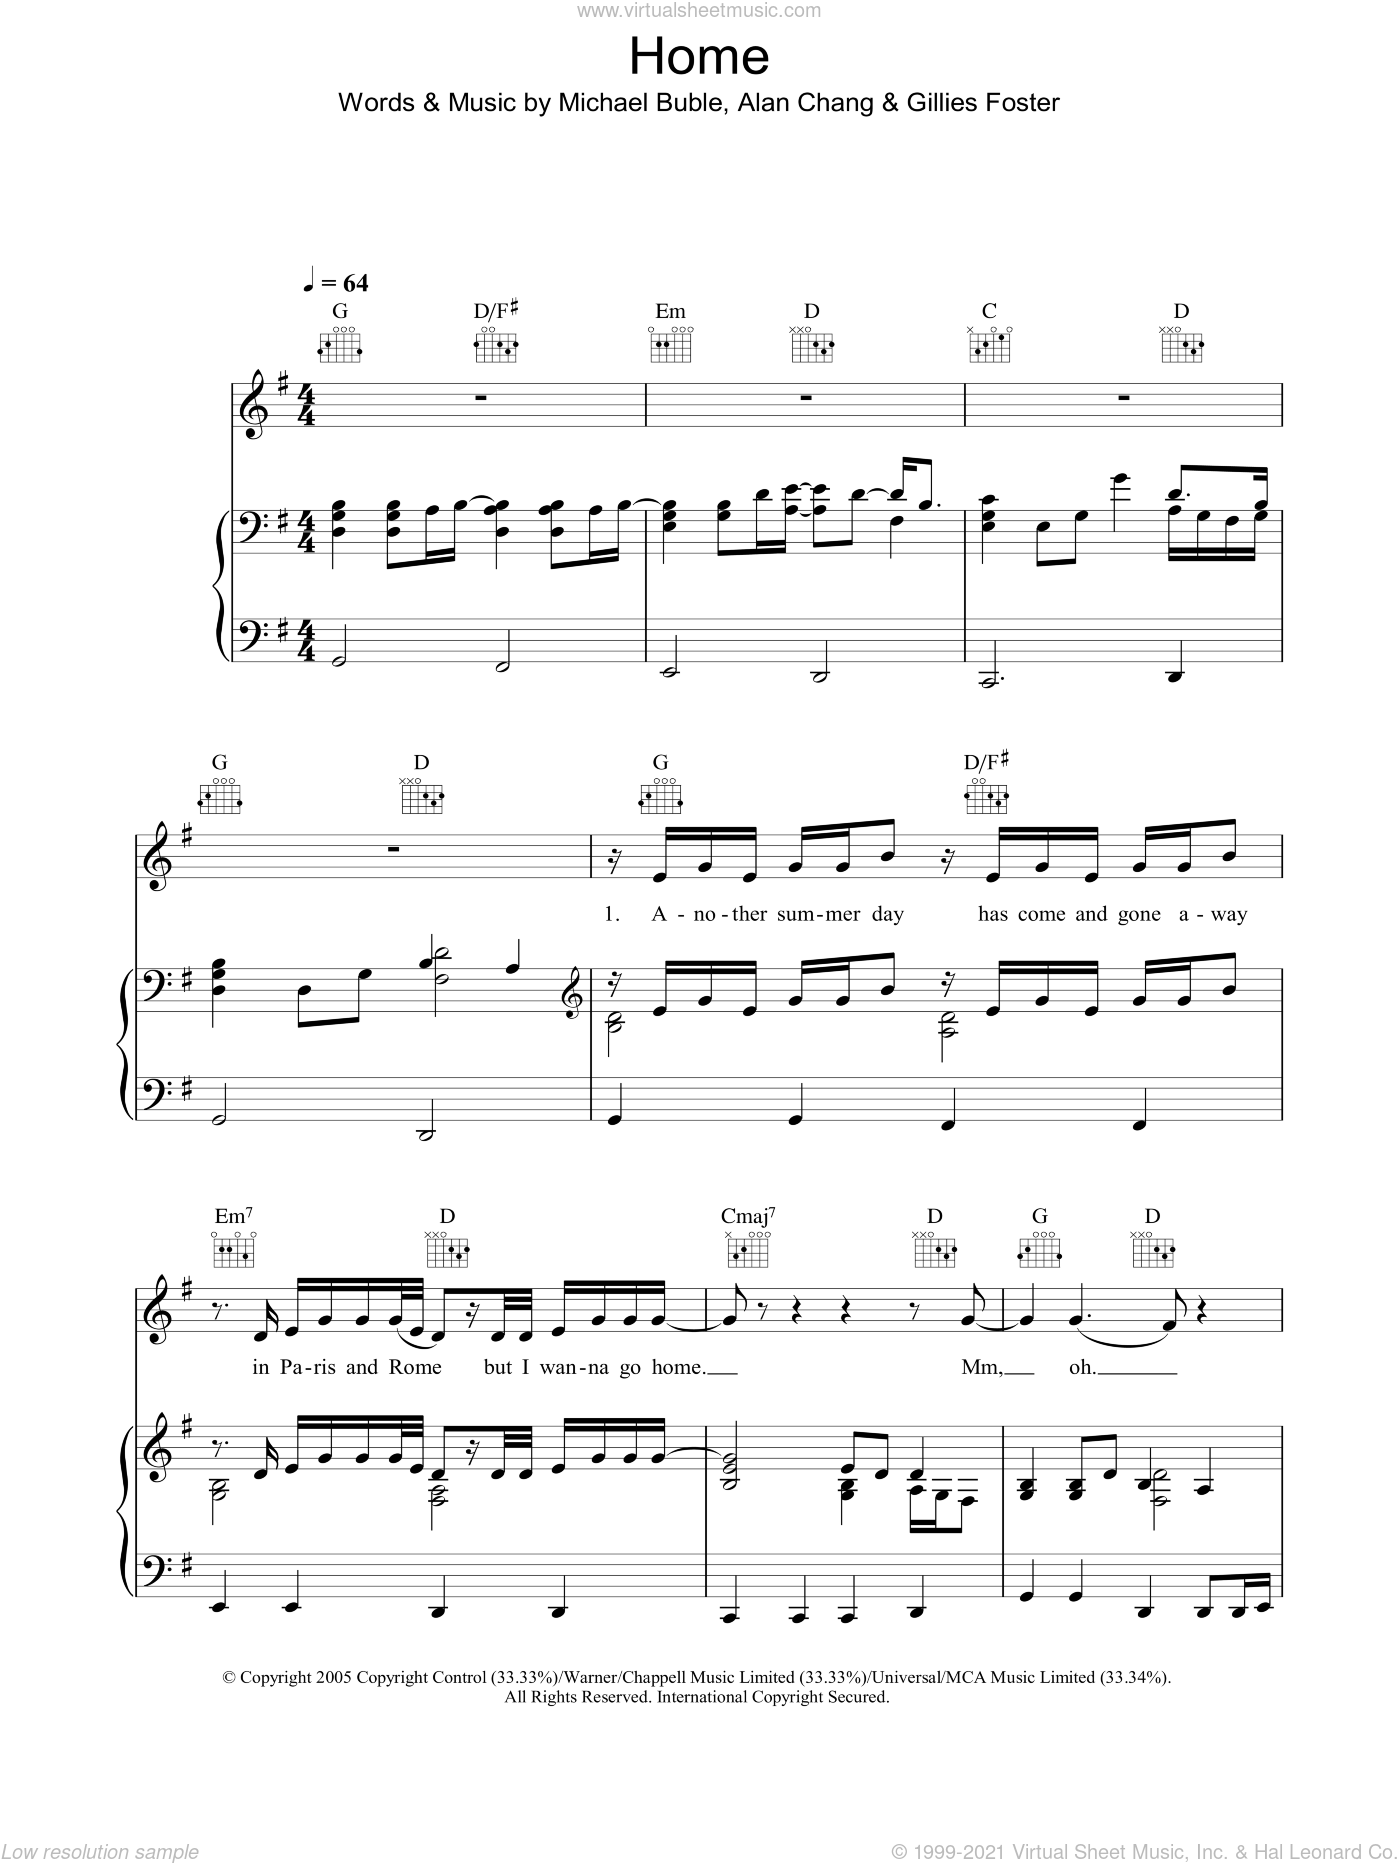 Home sheet music for voice, piano or guitar by Michael Bublé